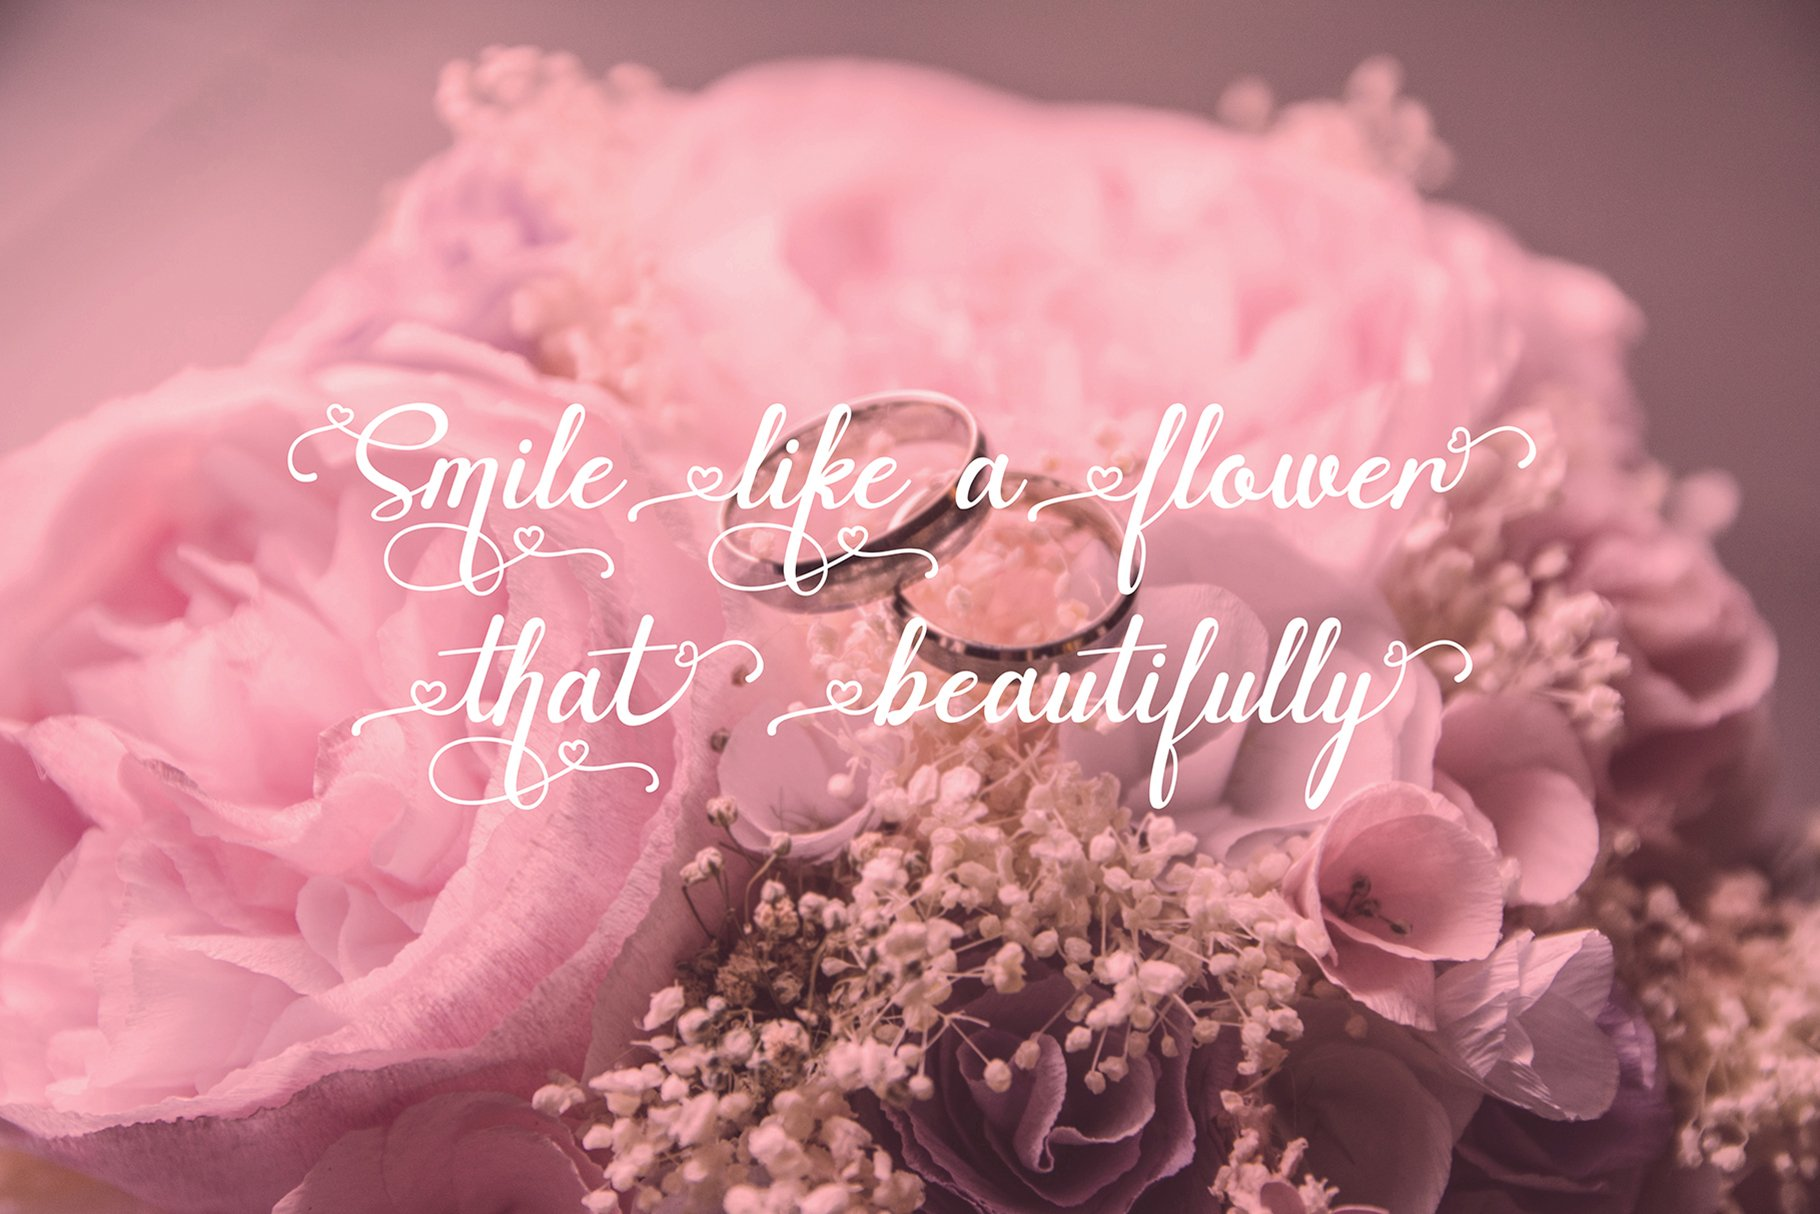 Canding Love - Script font Type face example image 3